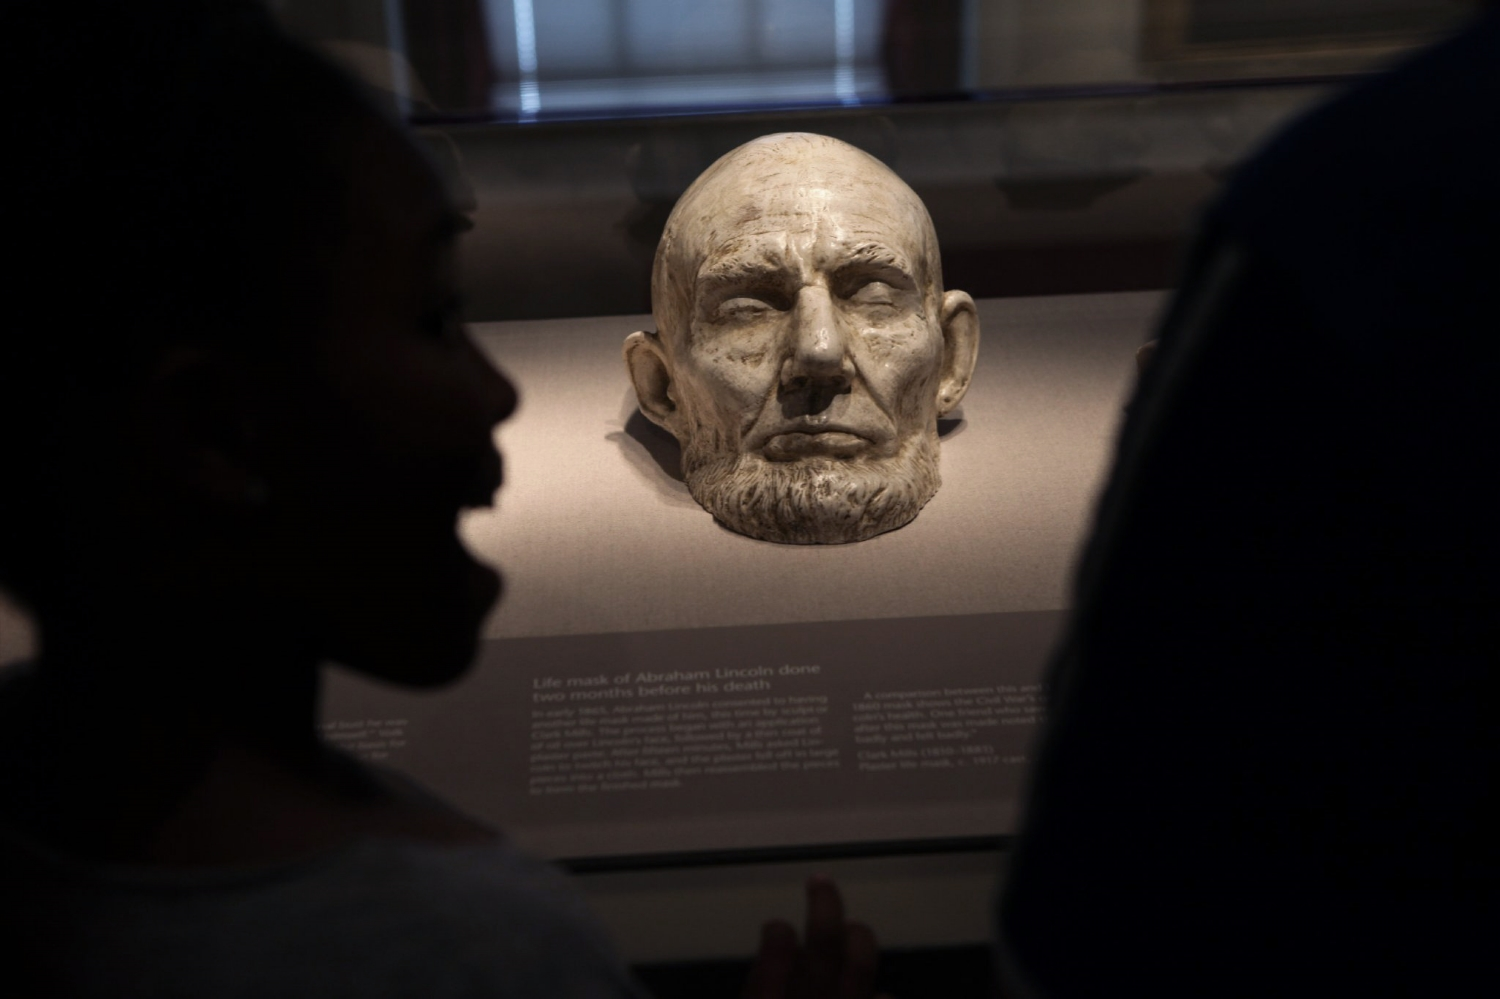 Life Mask of Abraham Lincoln  National Portrait Gallery Washington D.C.  2014